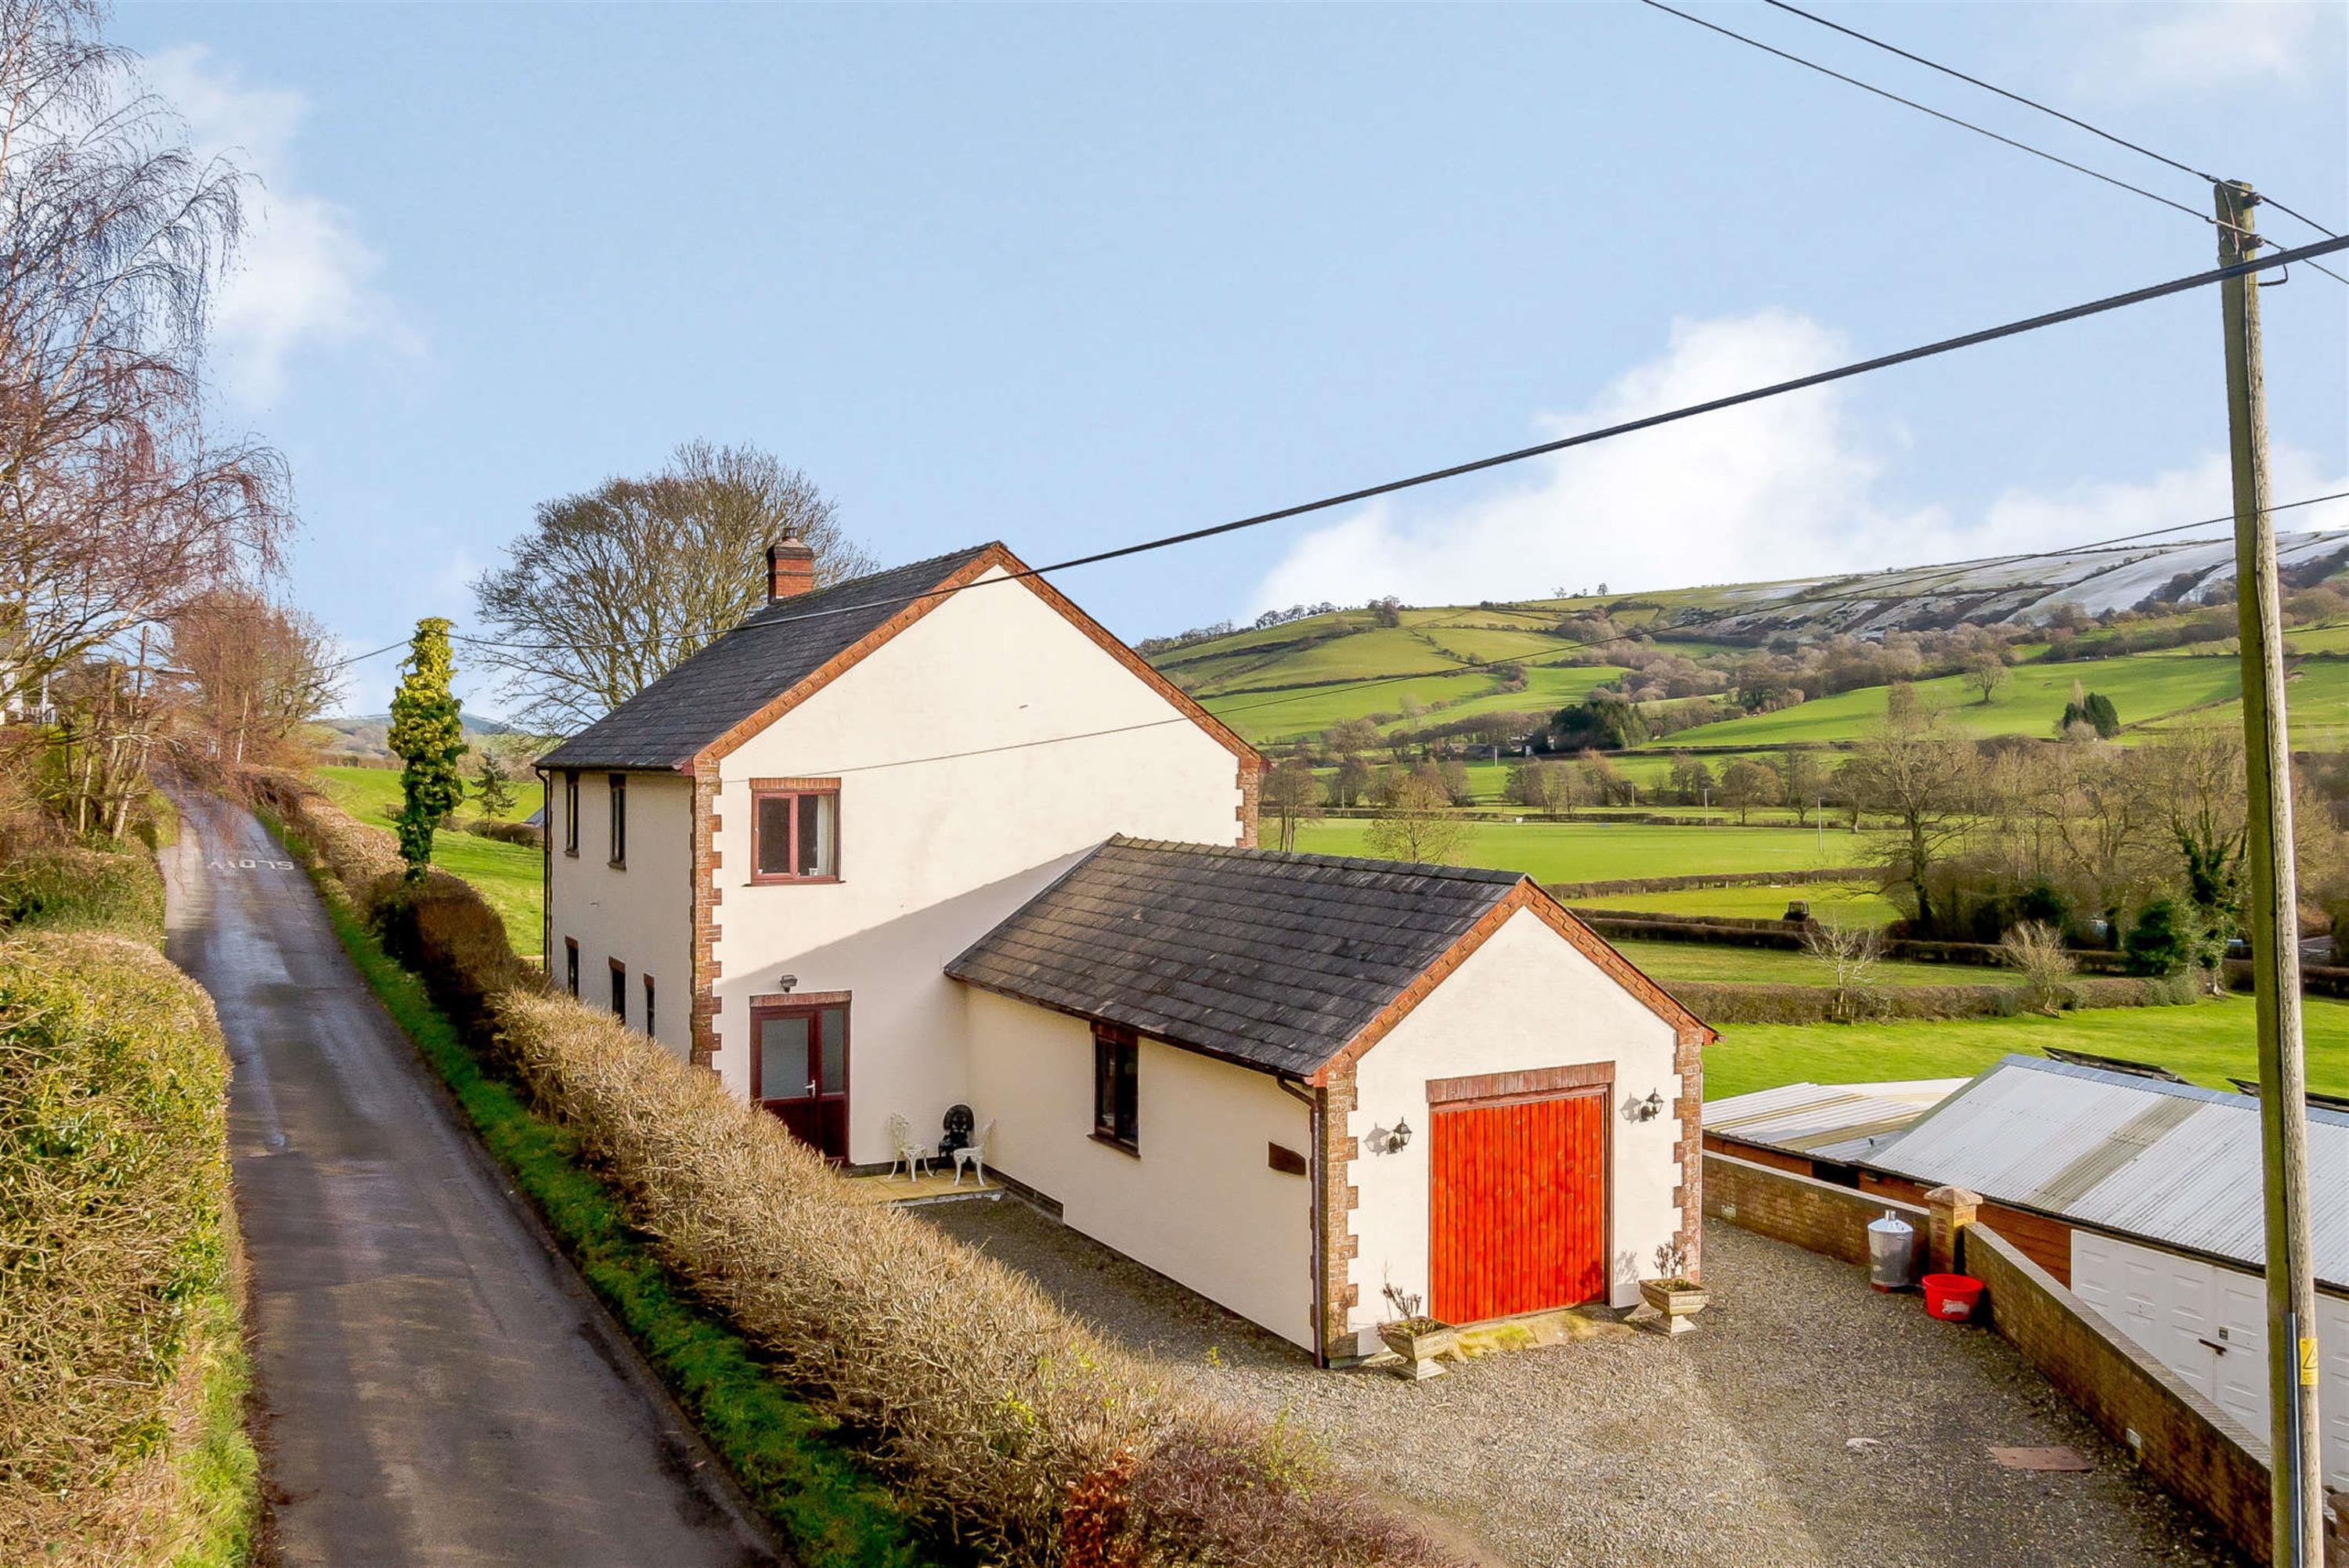 Sparksville, Church Road, Newcastle On Clun, SY7 8QL